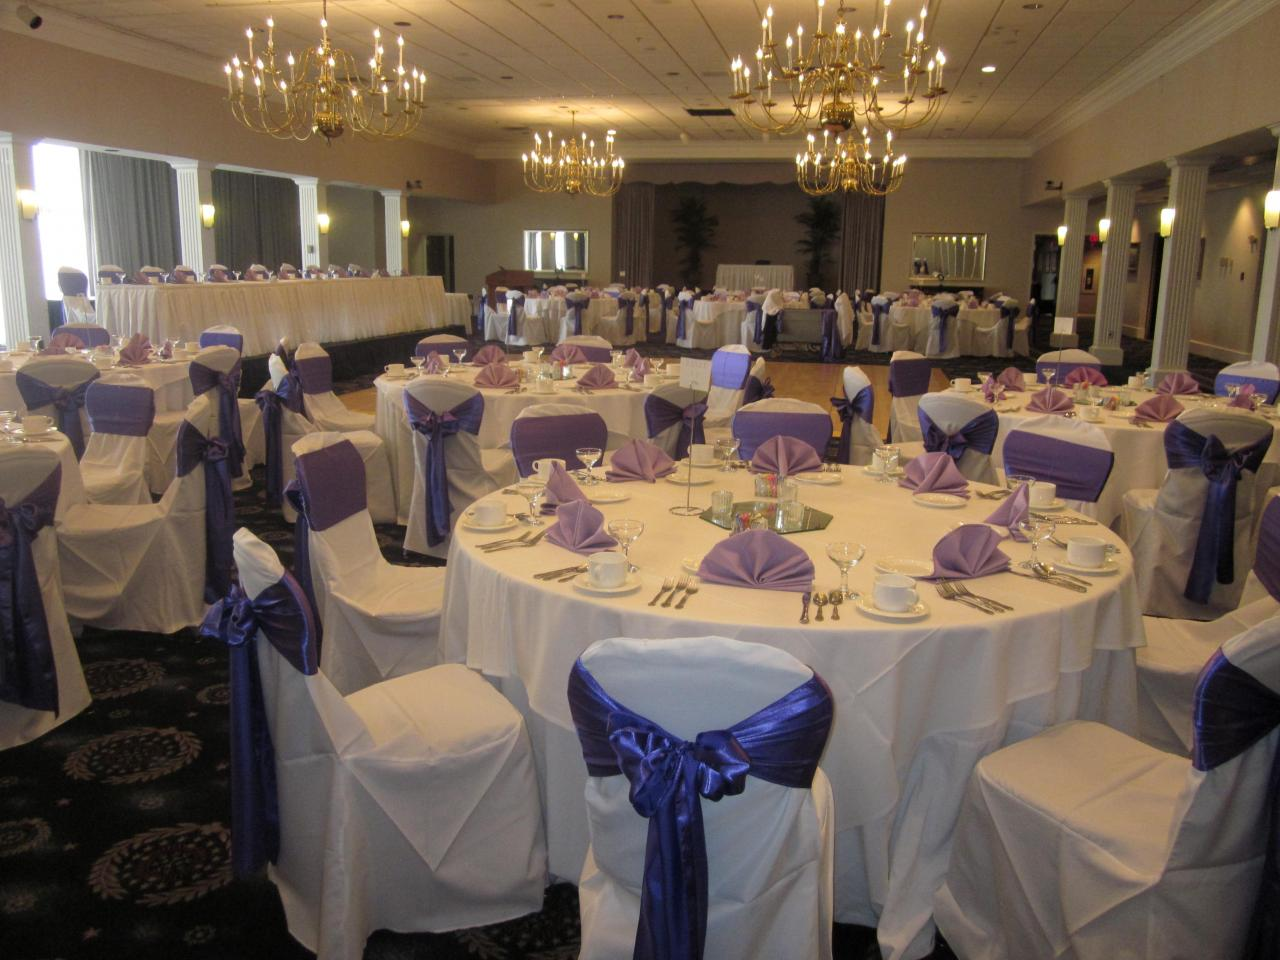 Wedding Chair Covers In Dc Md Amp Va Before Amp After